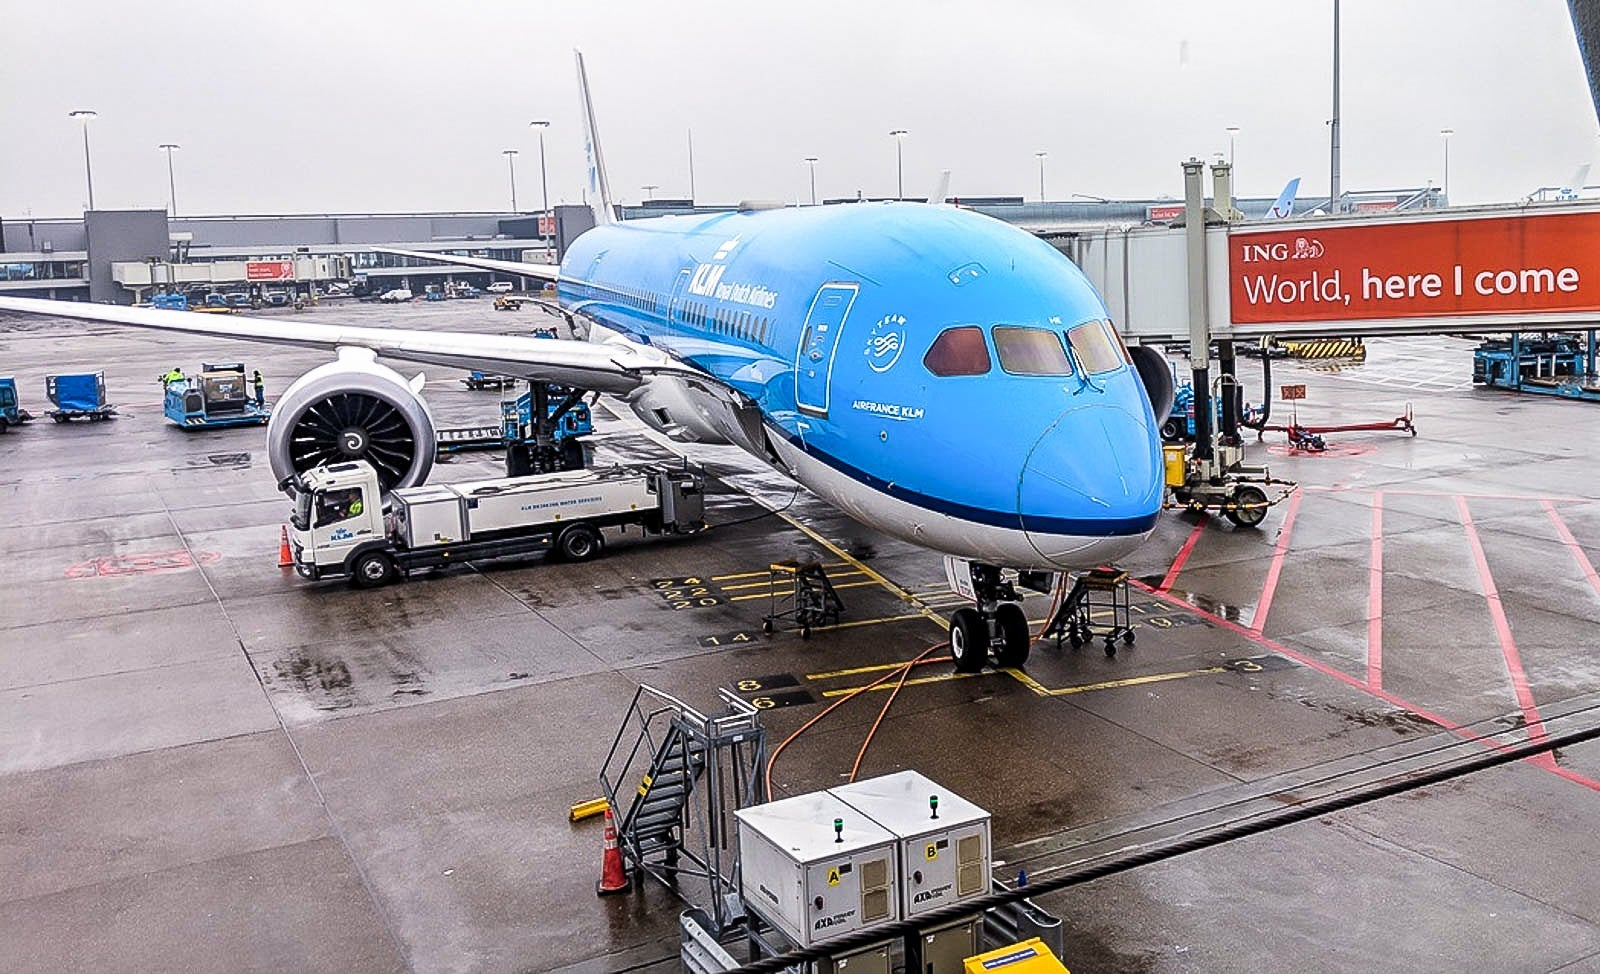 KLM to suspend long-haul operations to stem COVID-19 spread